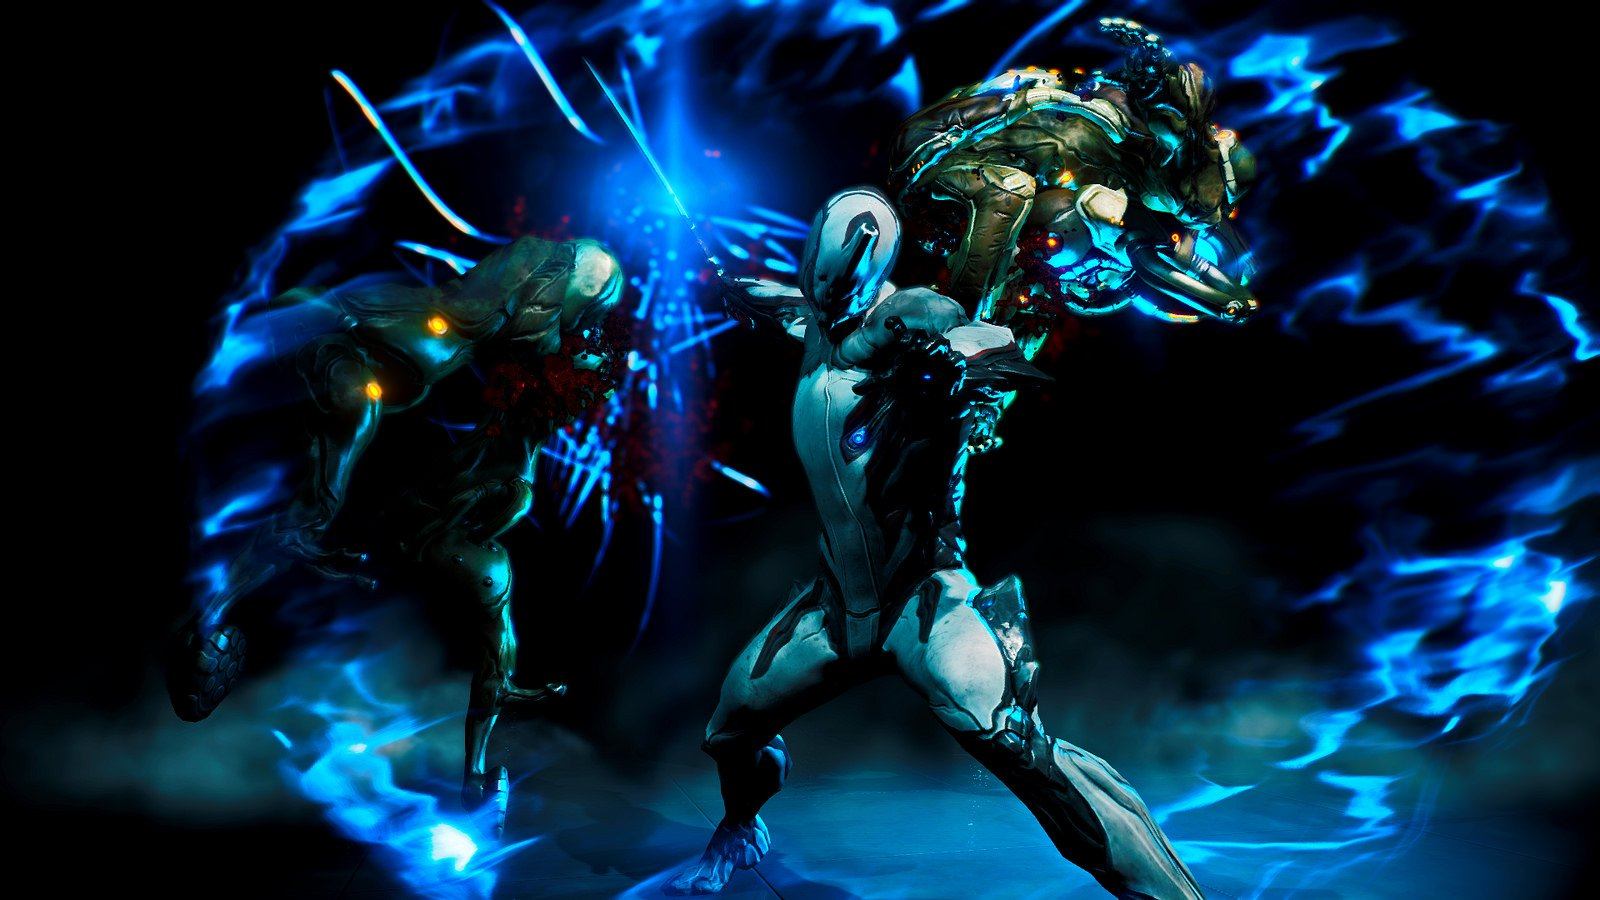 Warframe Wallpaper Warframe wallpaperscreenshots 1600x900